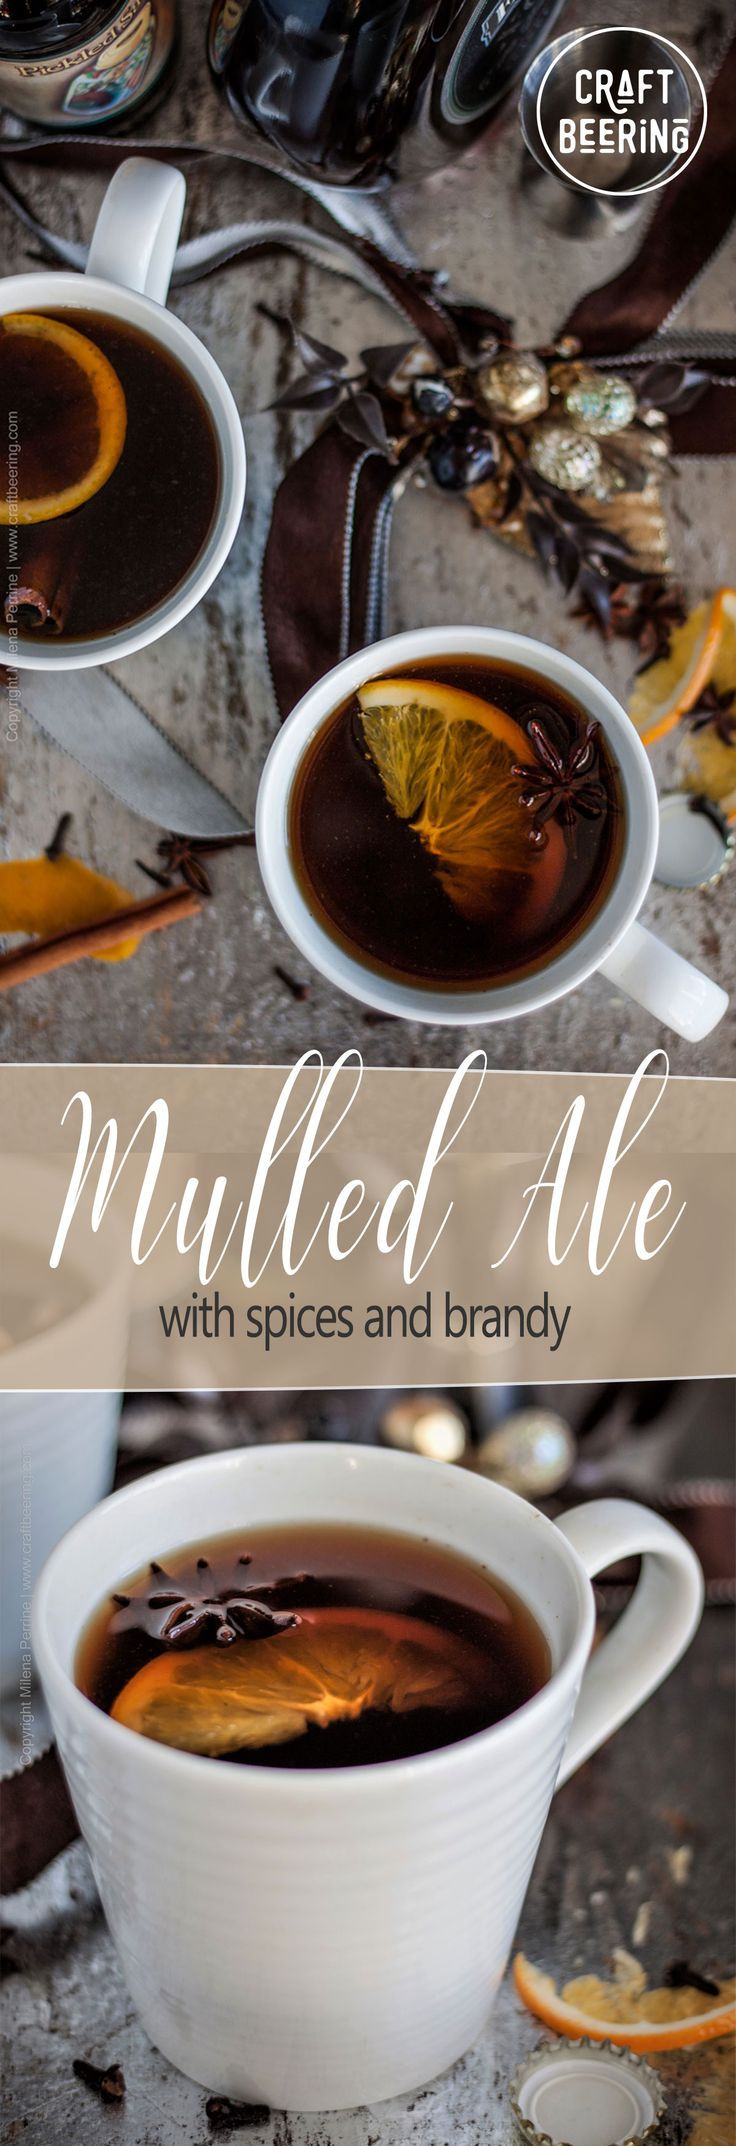 Mulled ale with spiced and brandy. A cup full of mulled beer (sweetened, spiced and fortified) is sure to warm your body and your soul! #mulledale #mulledbeer #warmedale #mulledwine #christmasale